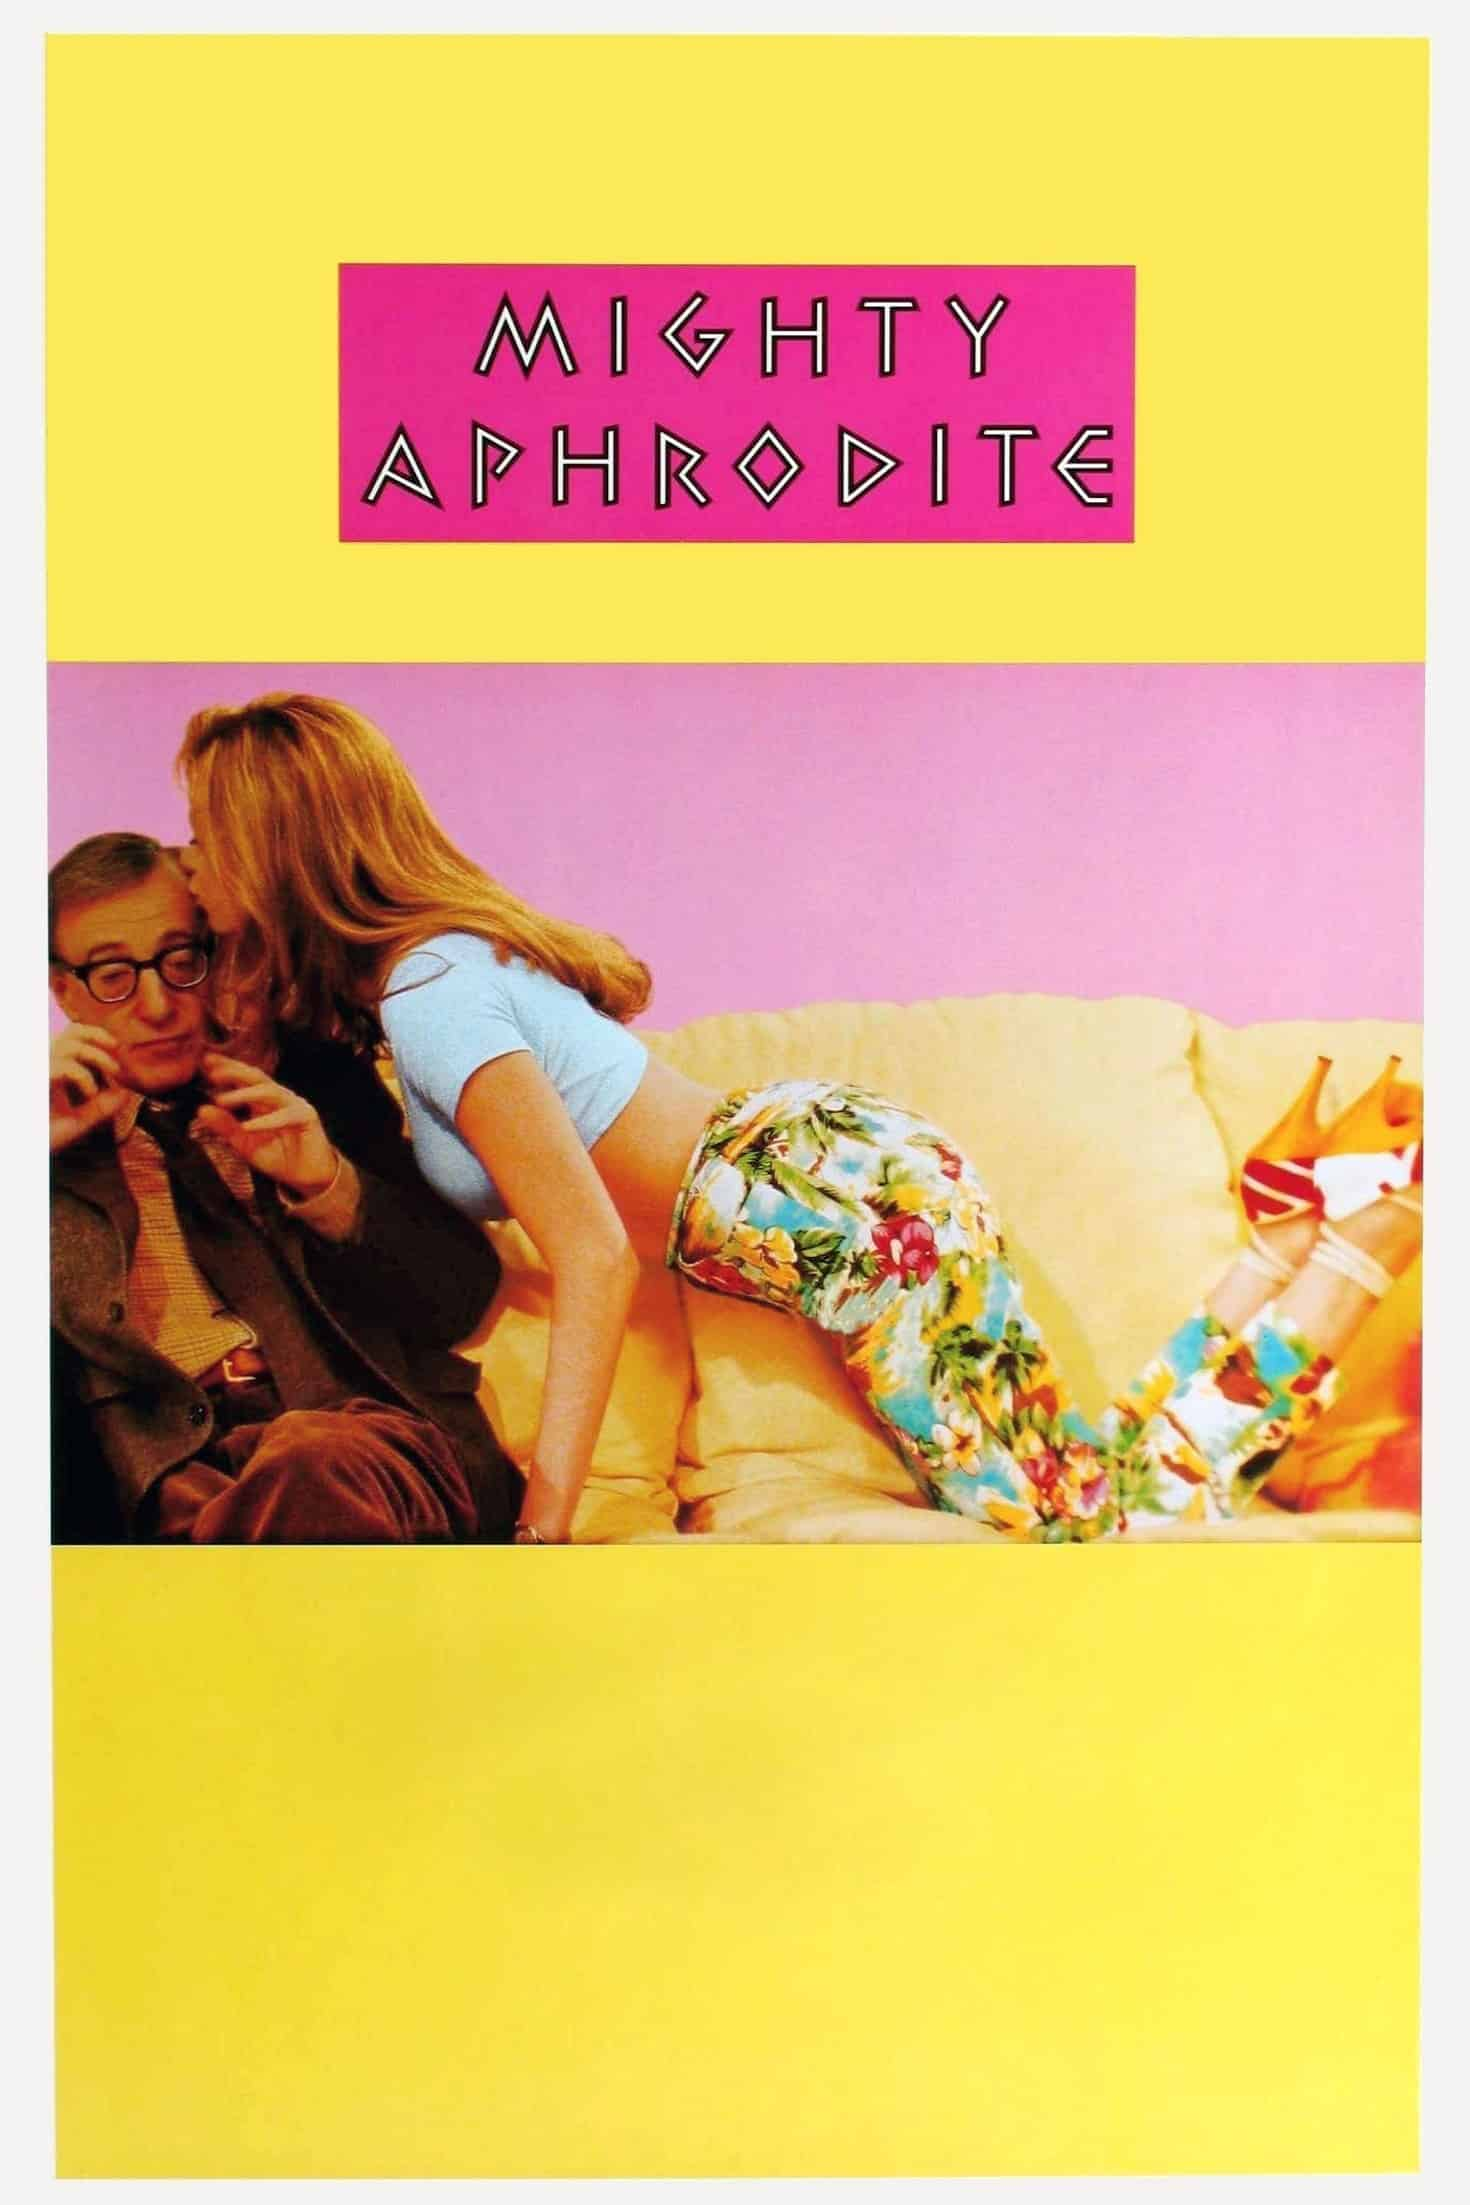 Mighty Aphrodite, 1995